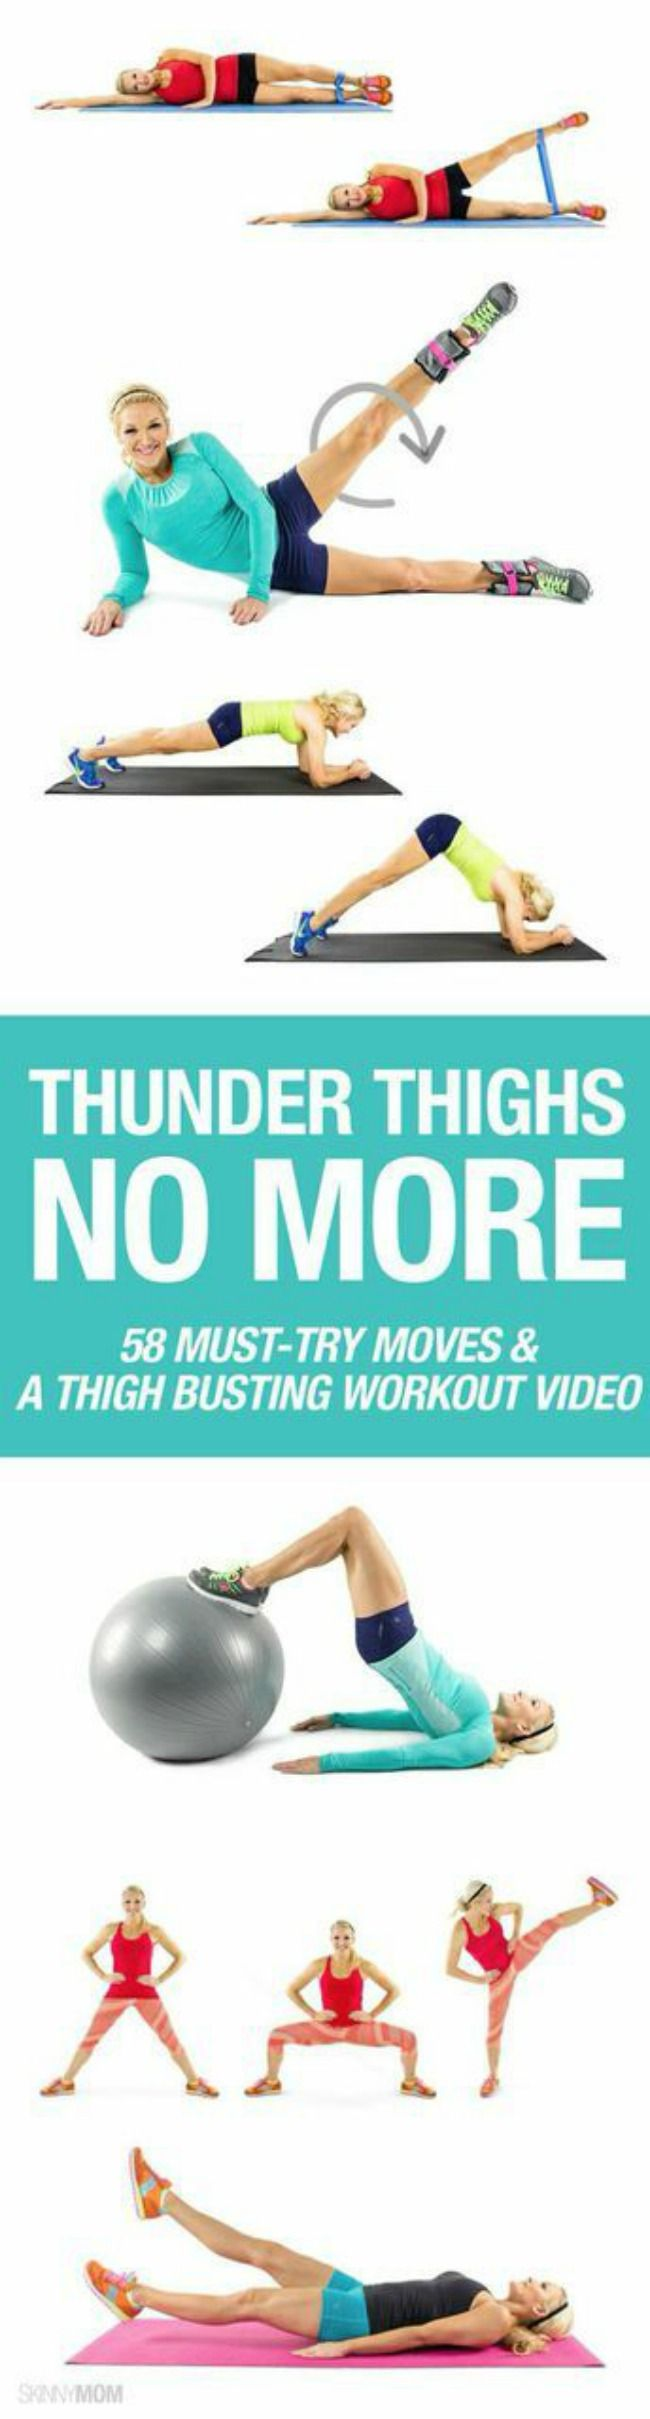 58 Must-Try Moves & A Thigh Busting Workout Video #thighsslimming #thighgap #exercises #fitness